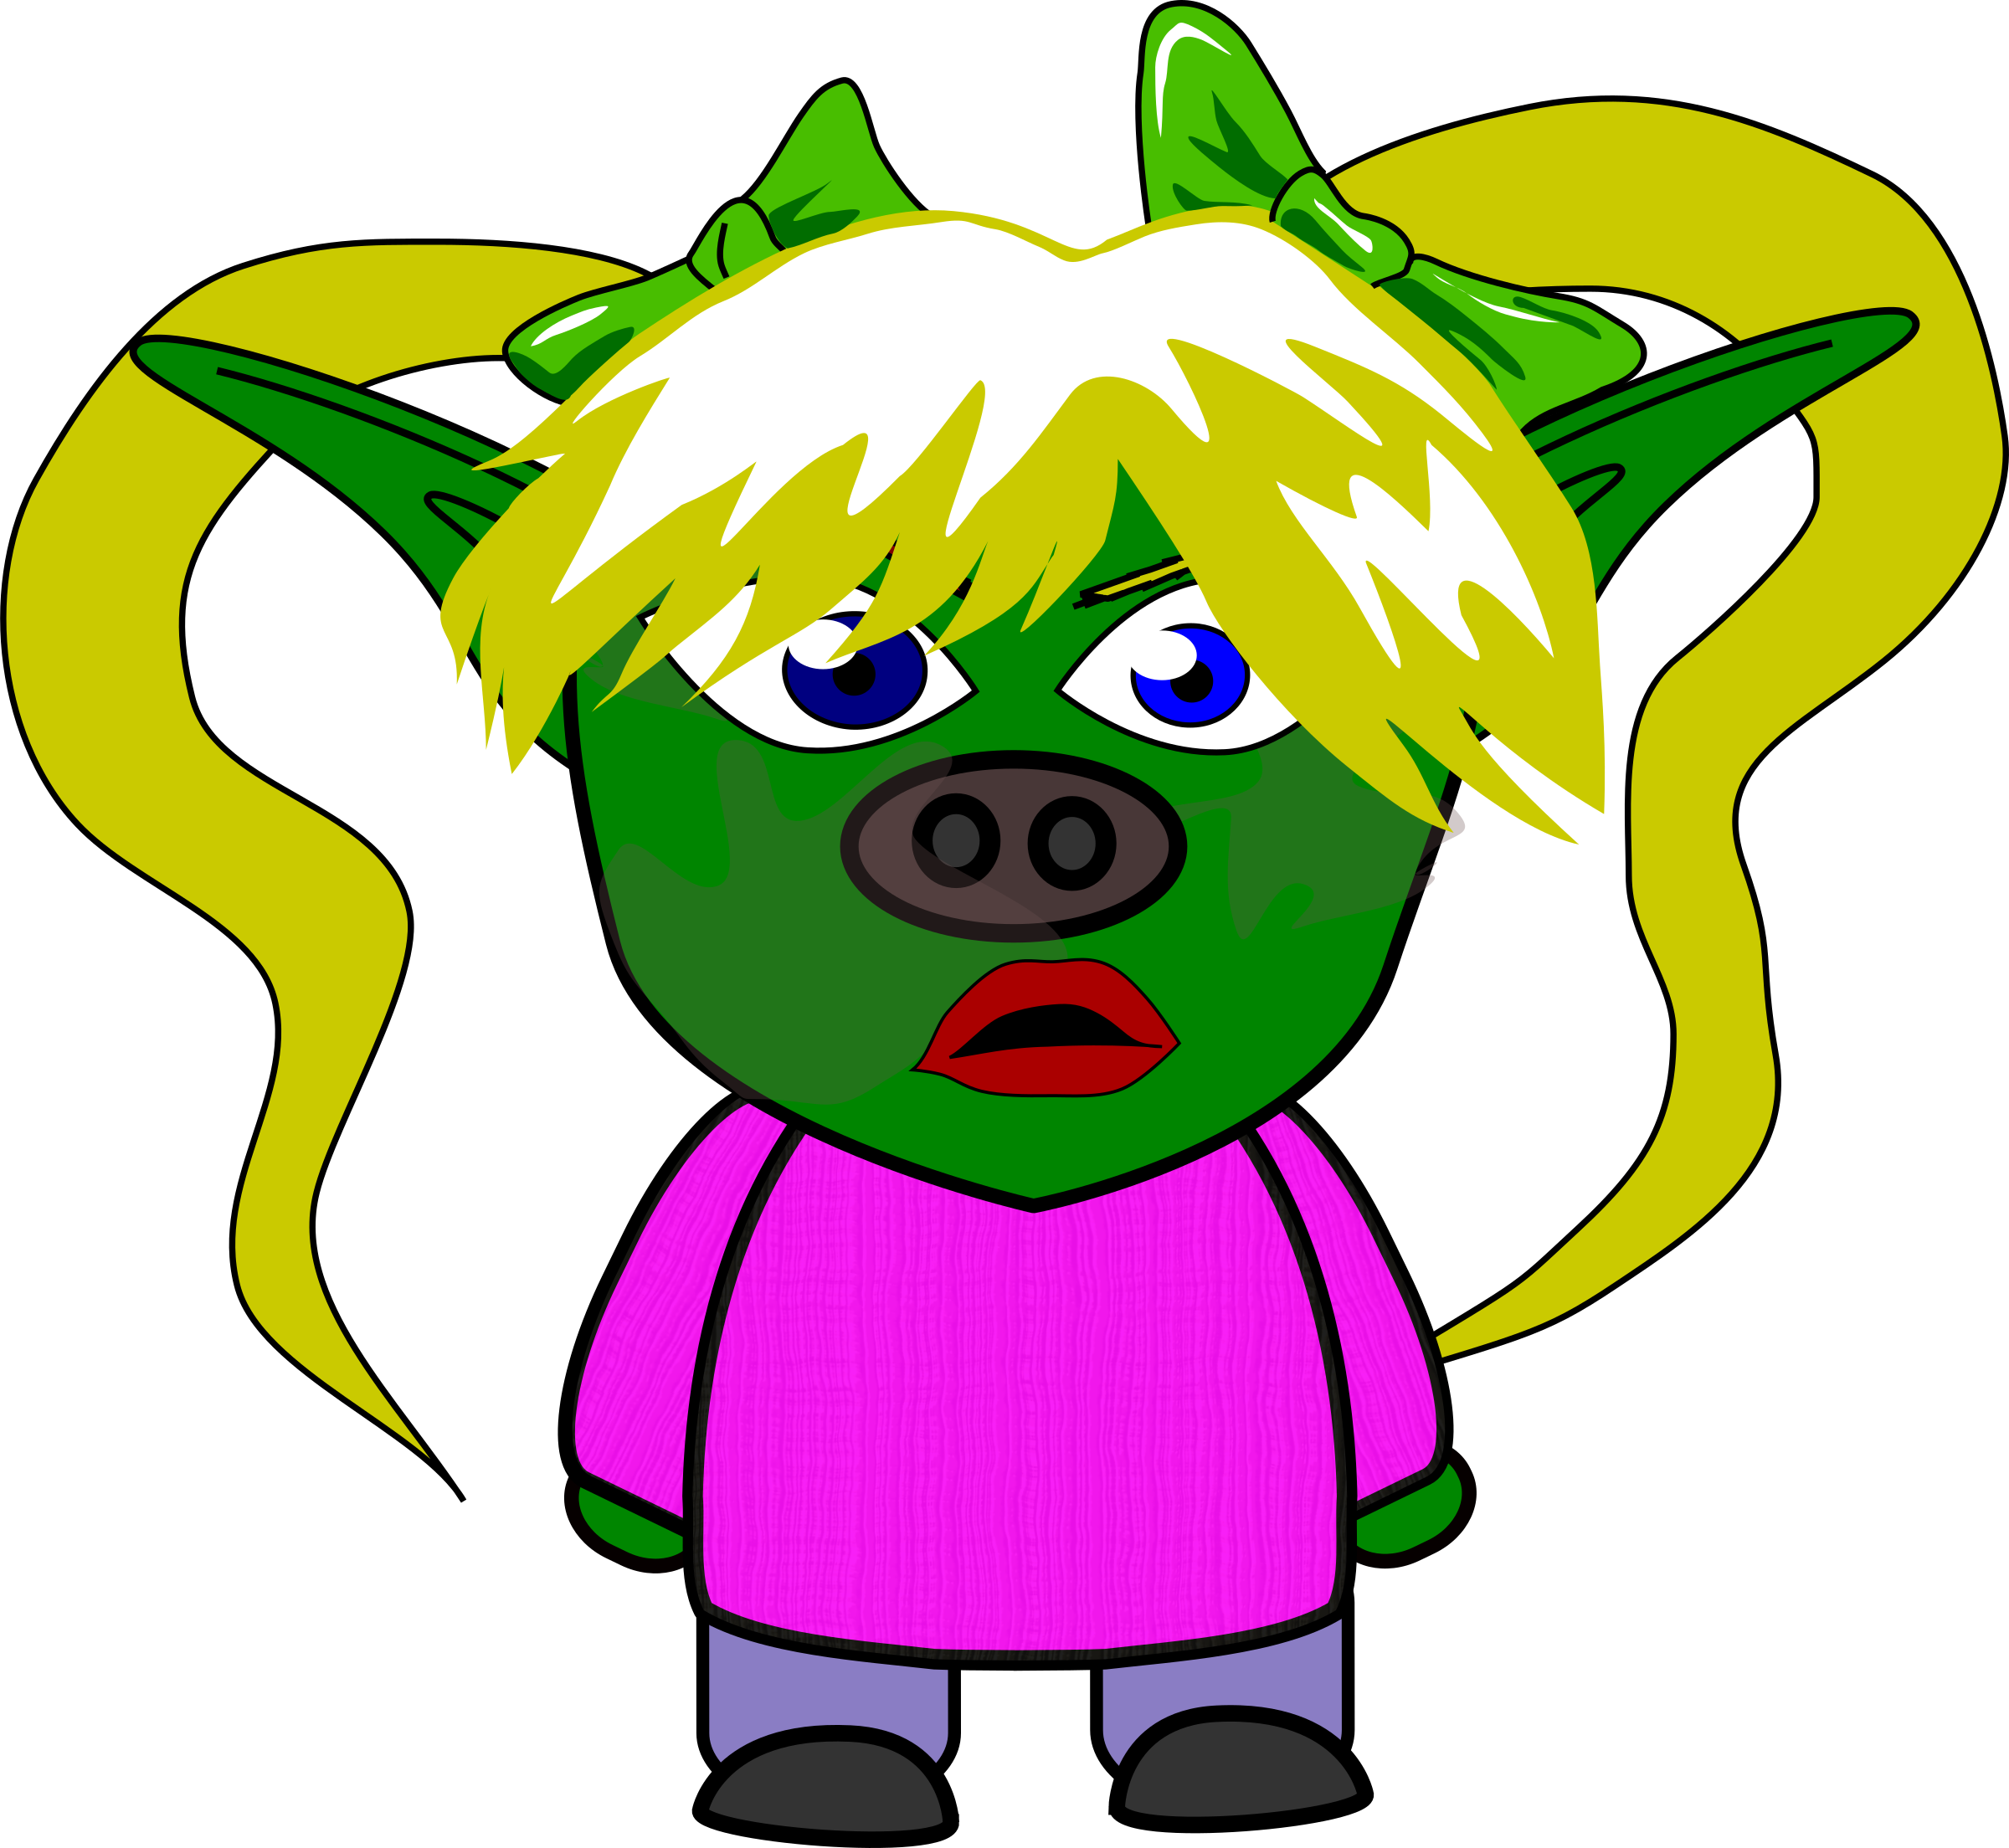 Ugly girl png. Chibi goblin icons free